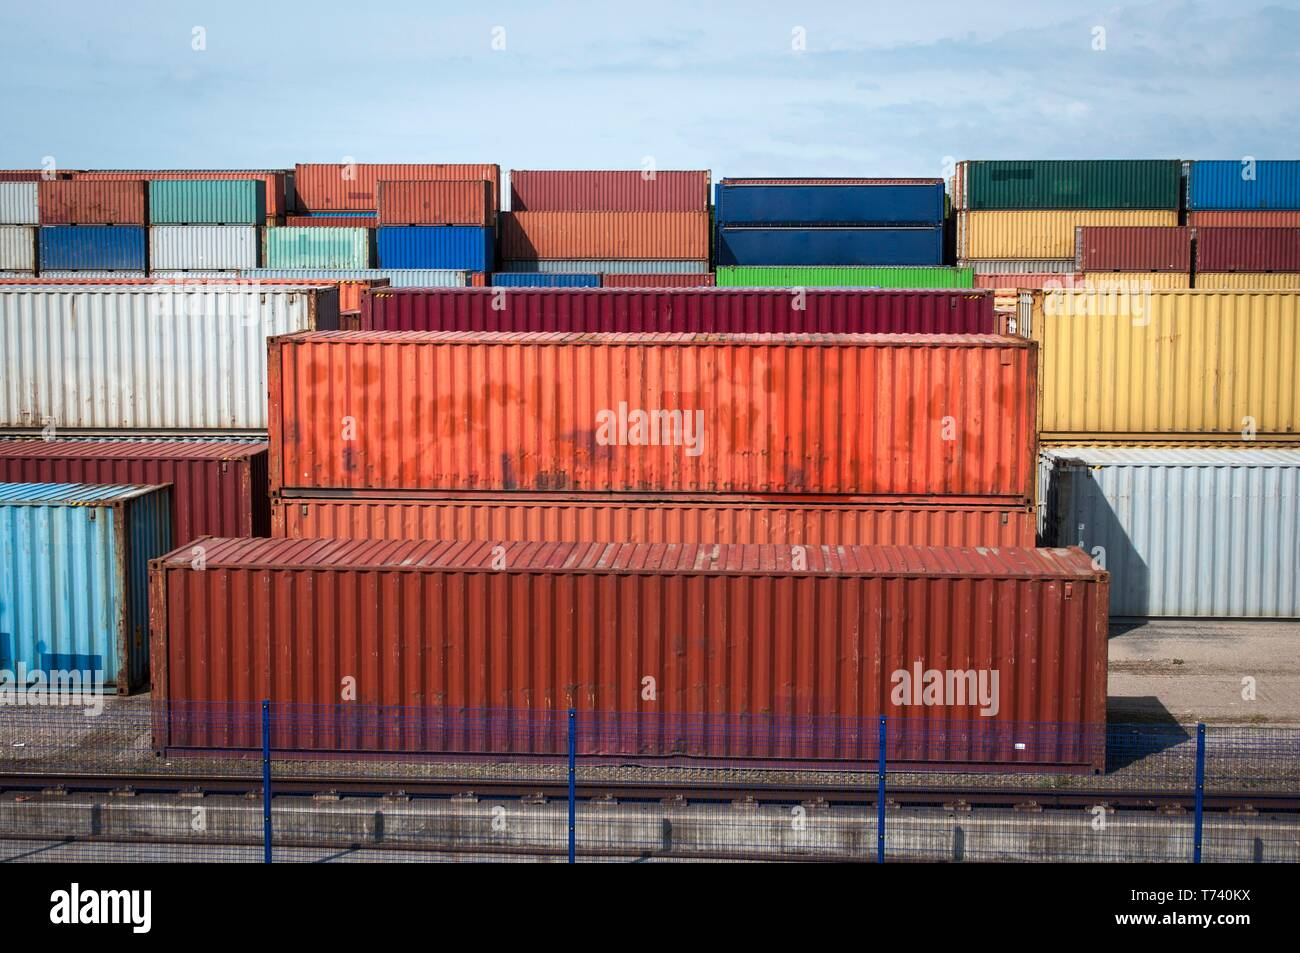 Shipping containers - Stock Image